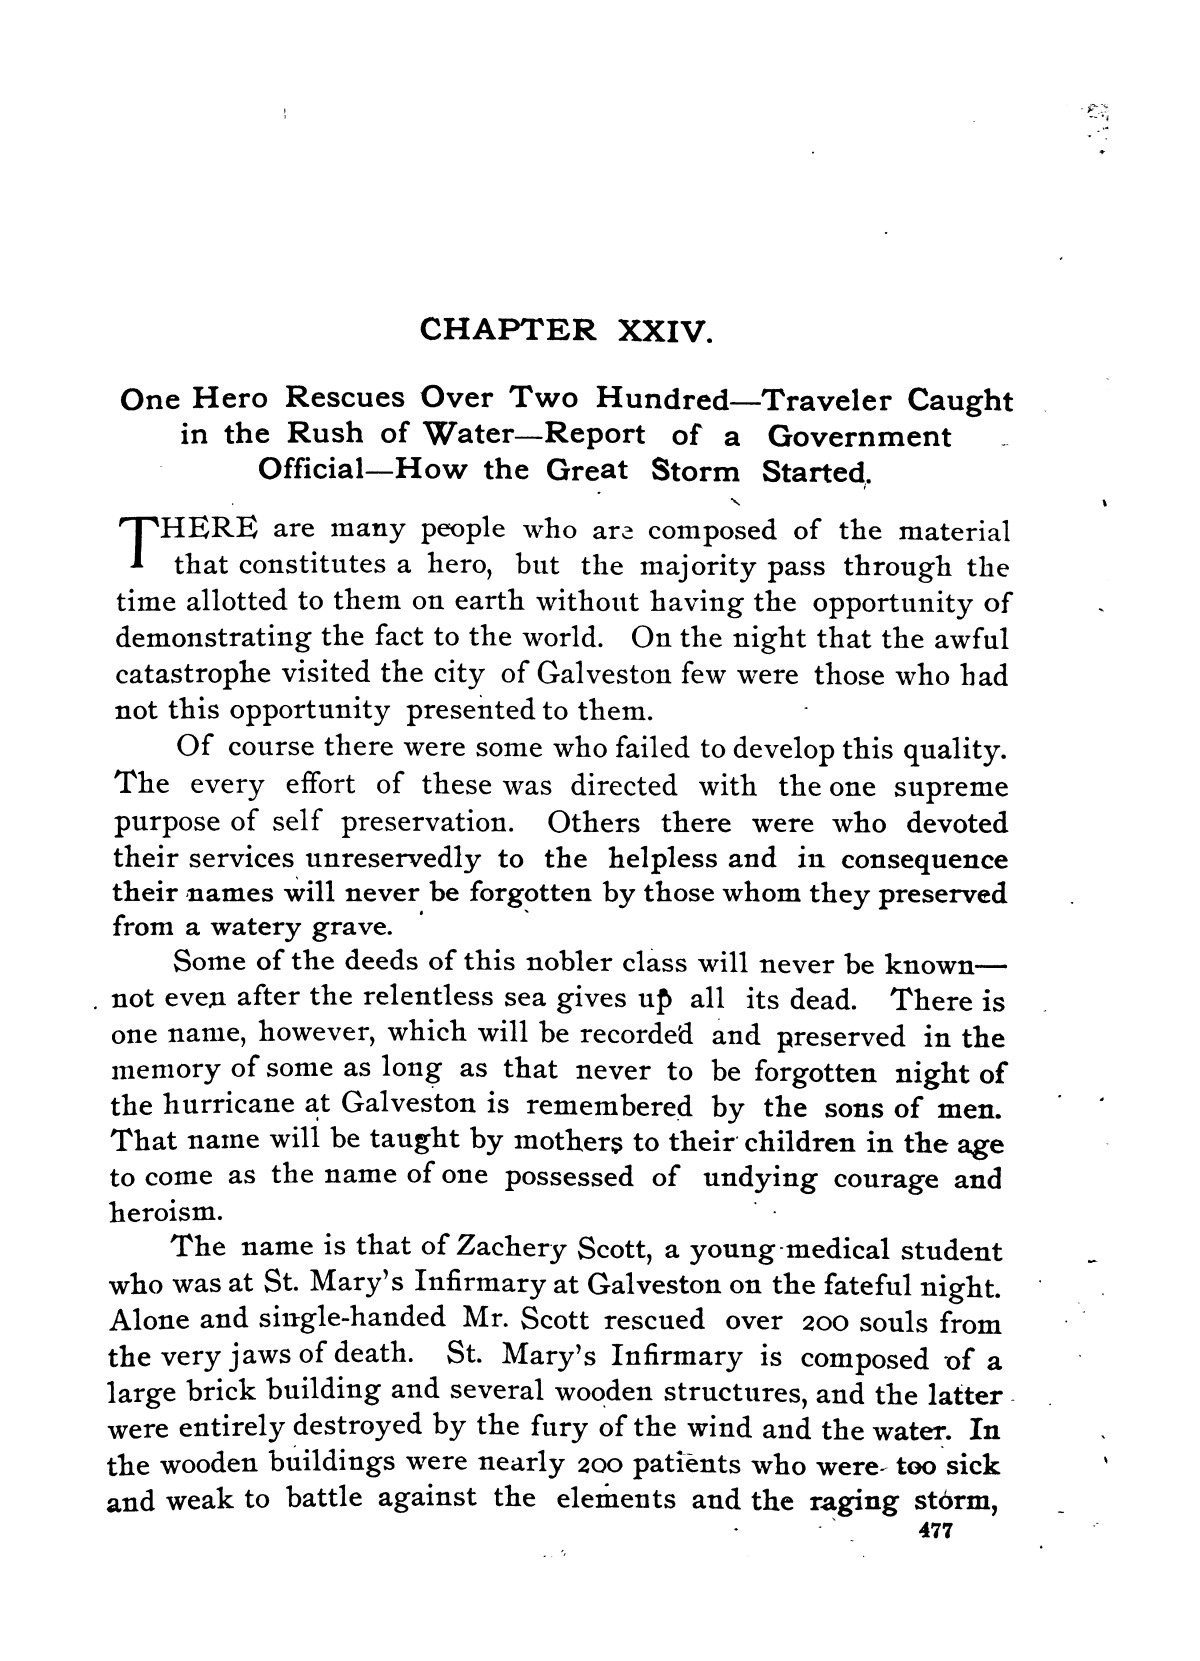 The great Galveston disaster, containing a full and thrilling account of the most appalling calamity of modern times including vivid descriptions of the hurricane                                                                                                      477